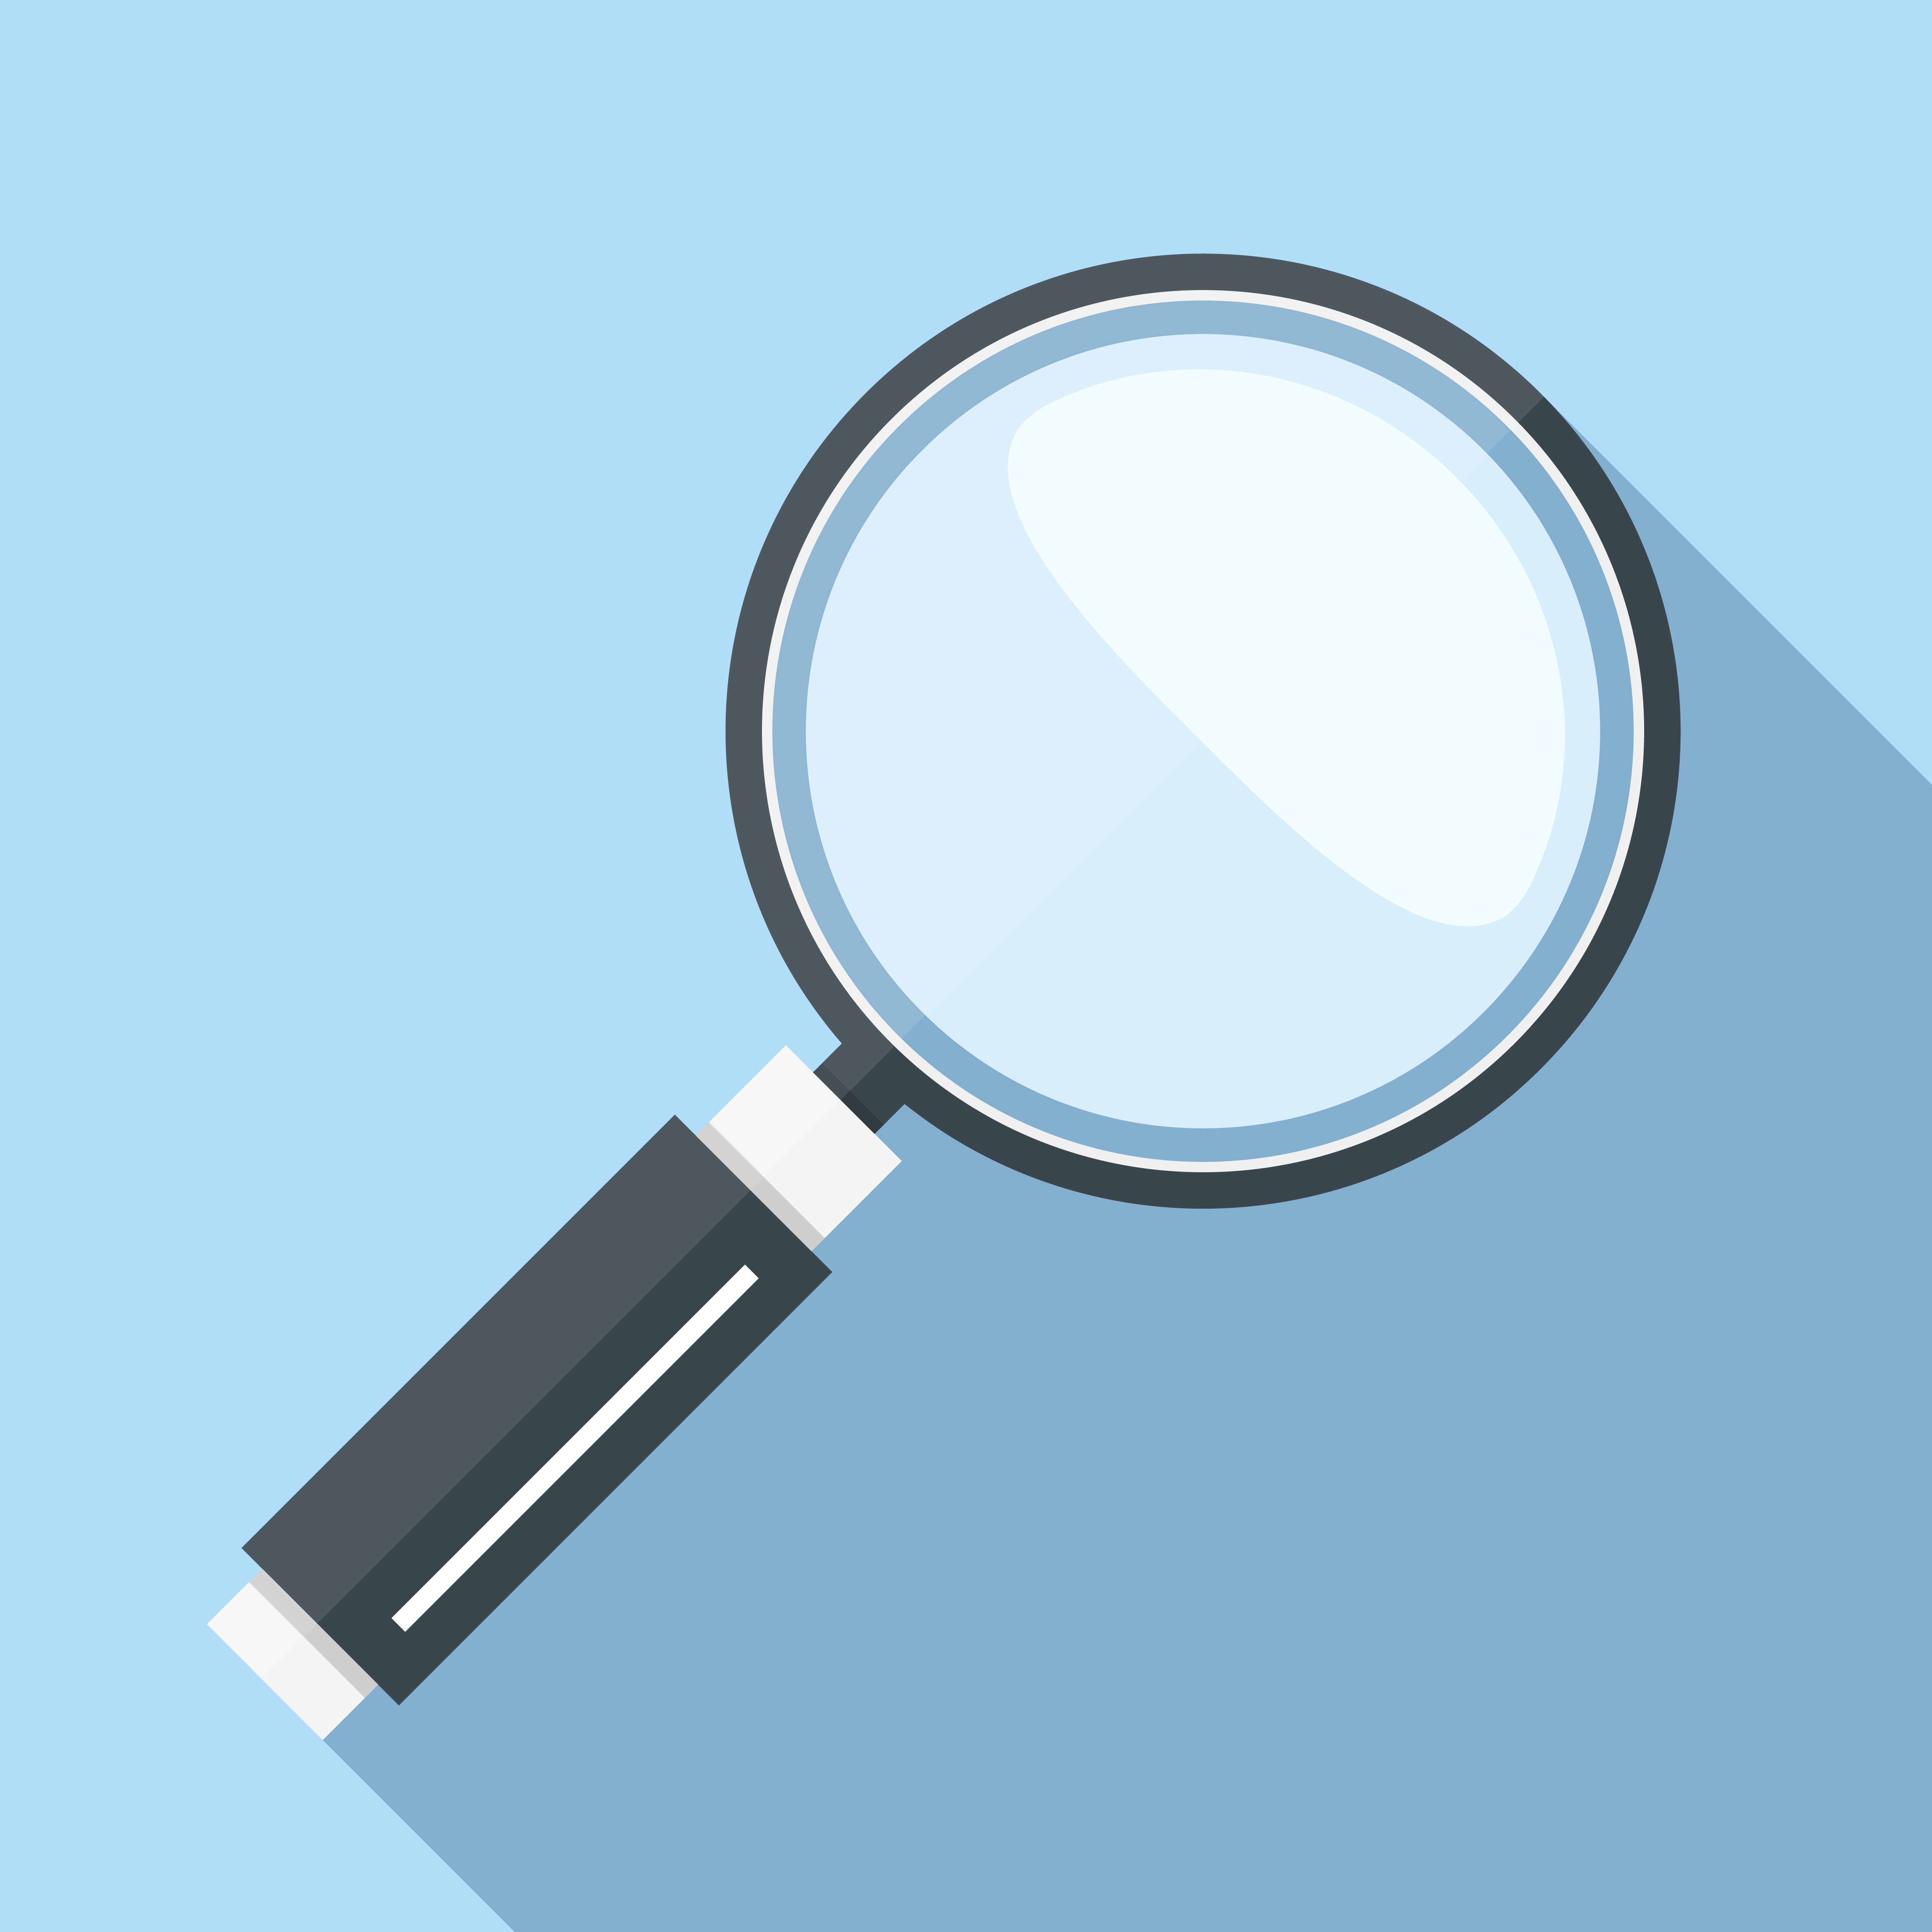 magnifying-glass-icon-flat-design-long